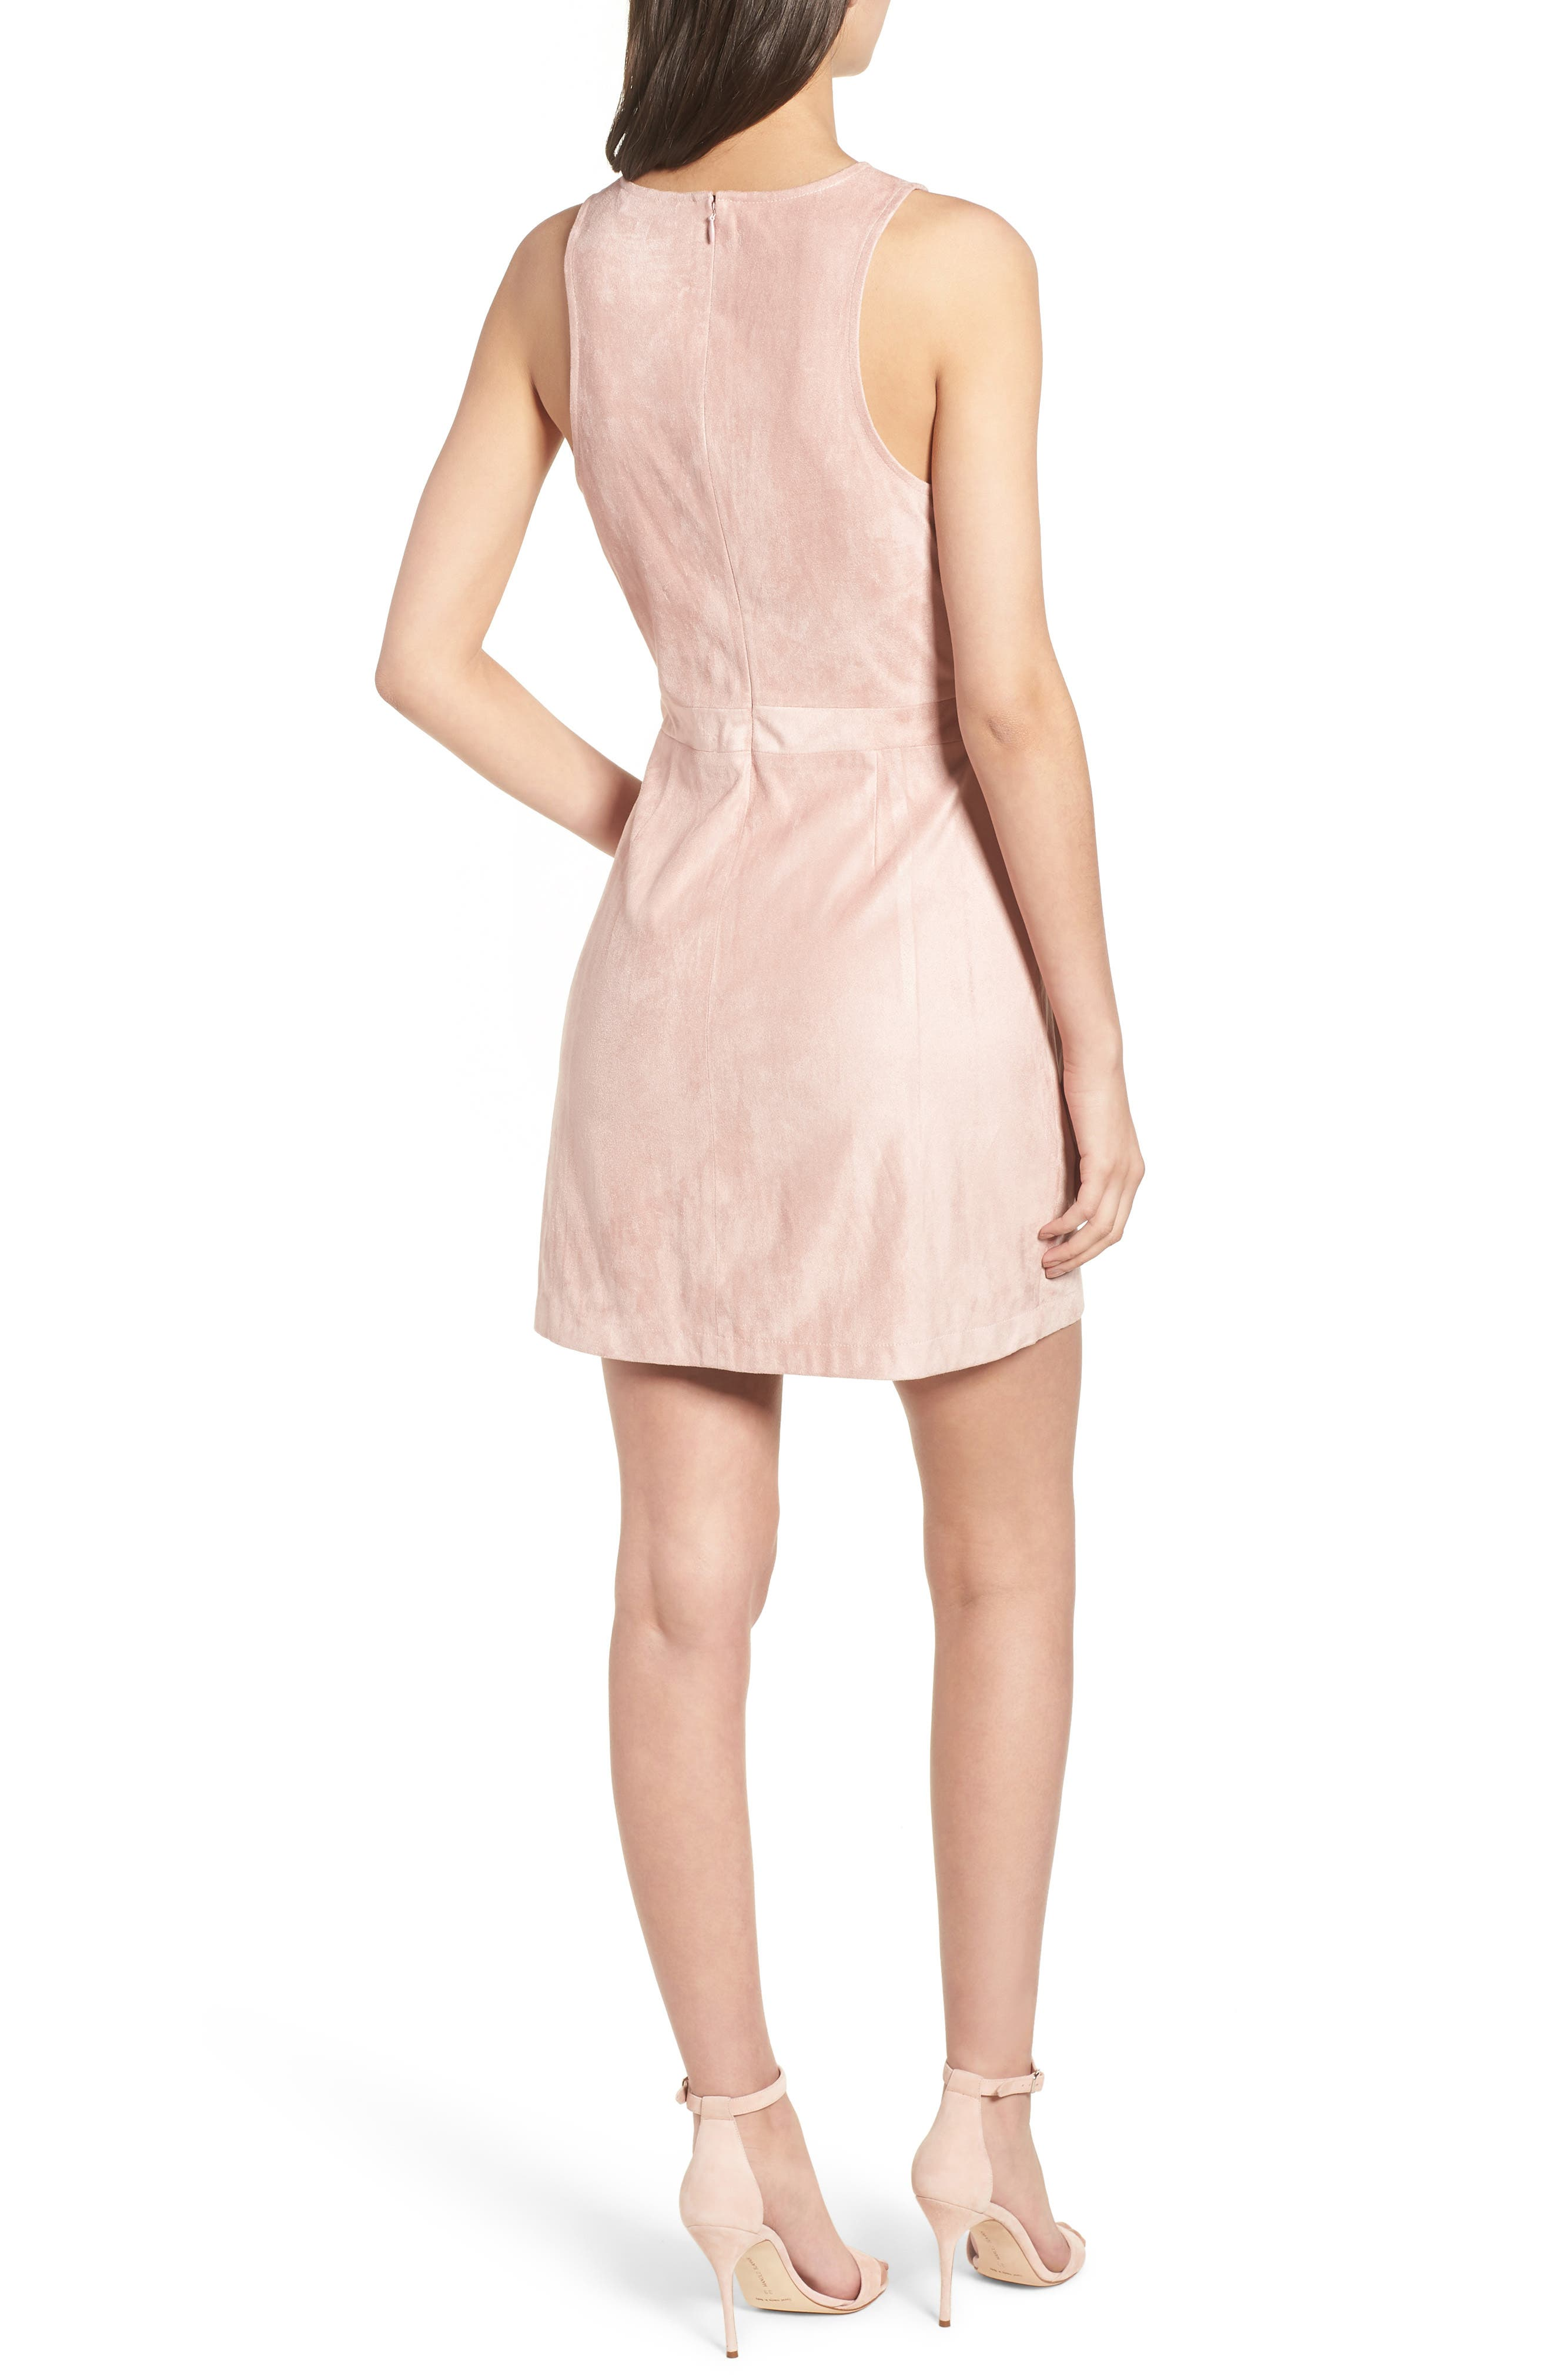 Daton Faux Suede Dress,                             Alternate thumbnail 2, color,                             Nude Pink